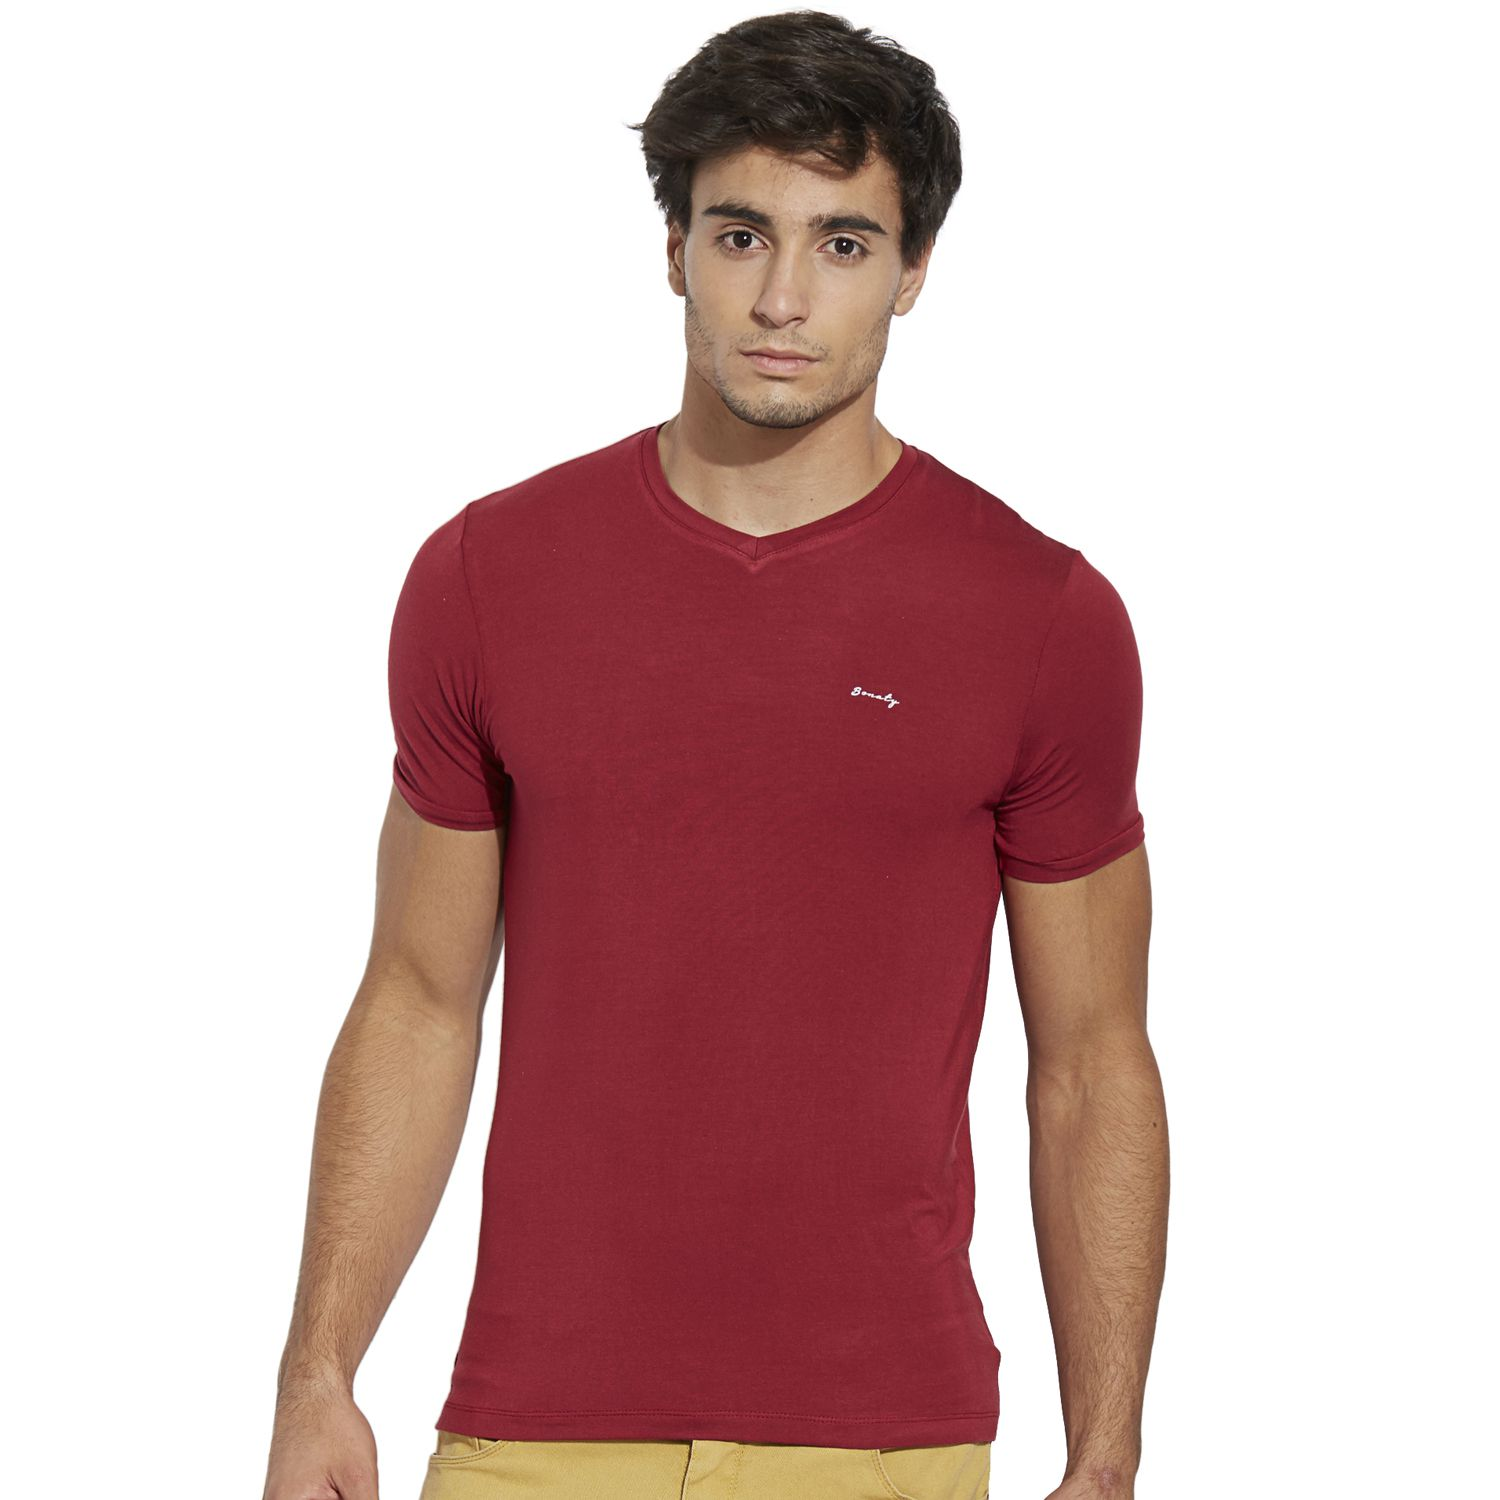 BONATY Red Micro Modal  V-Neck Half Sleeves Solid T-Shirt For Men